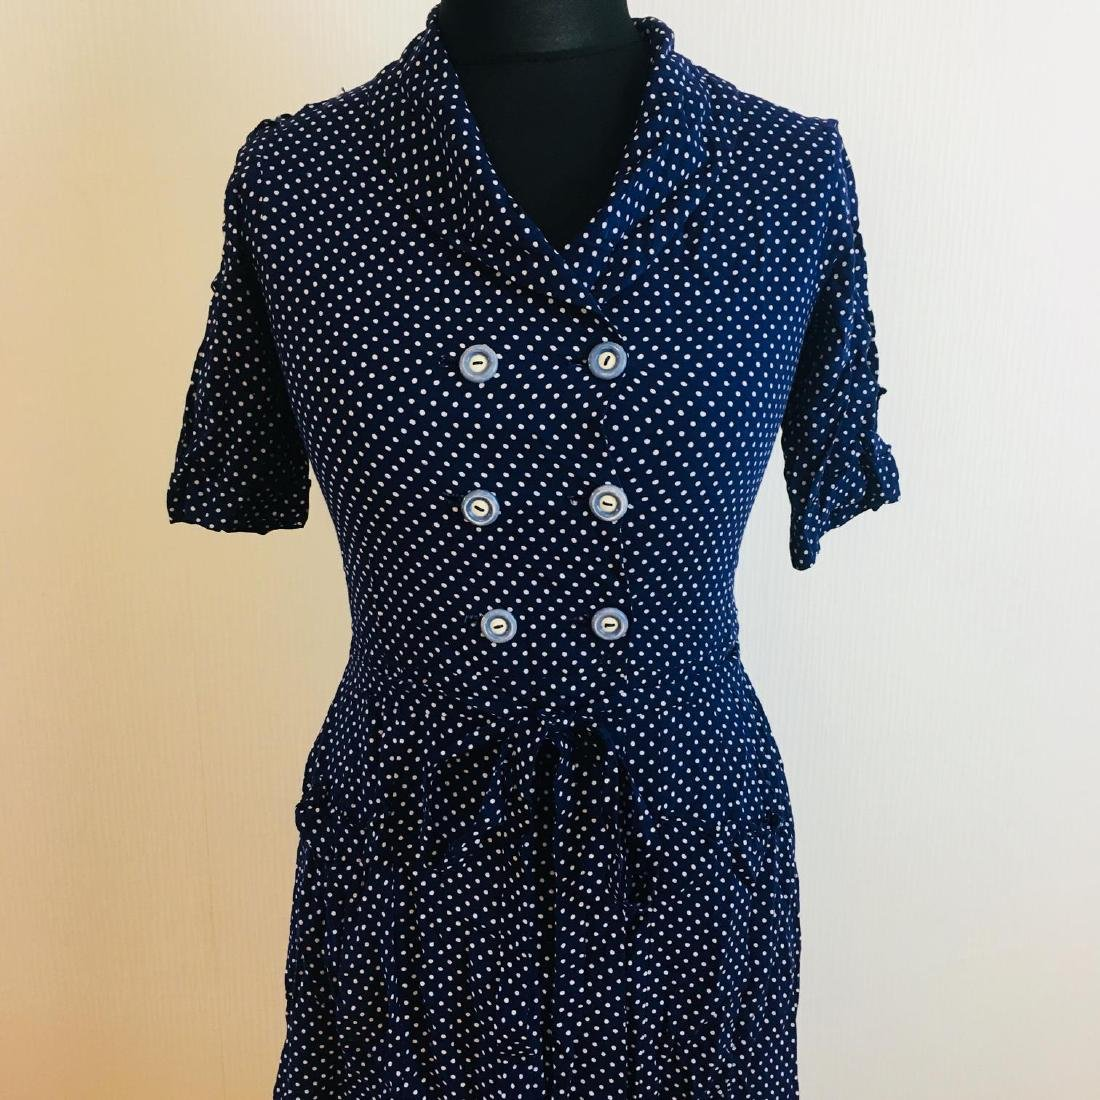 Vintage Women's Day Dress Size EUR 36 US 6 - 2